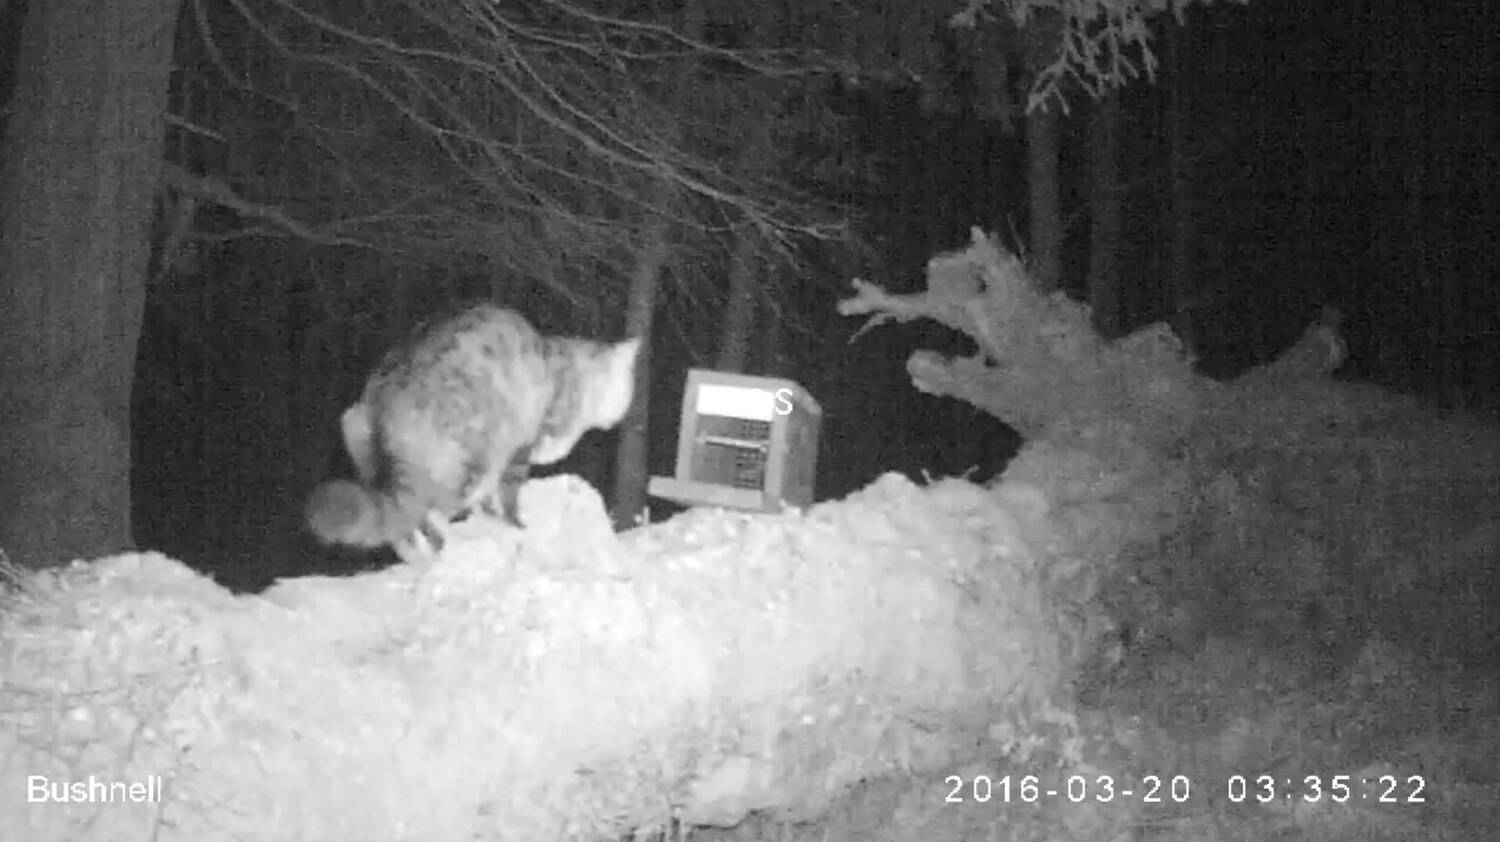 A wildcat caught on camera at night